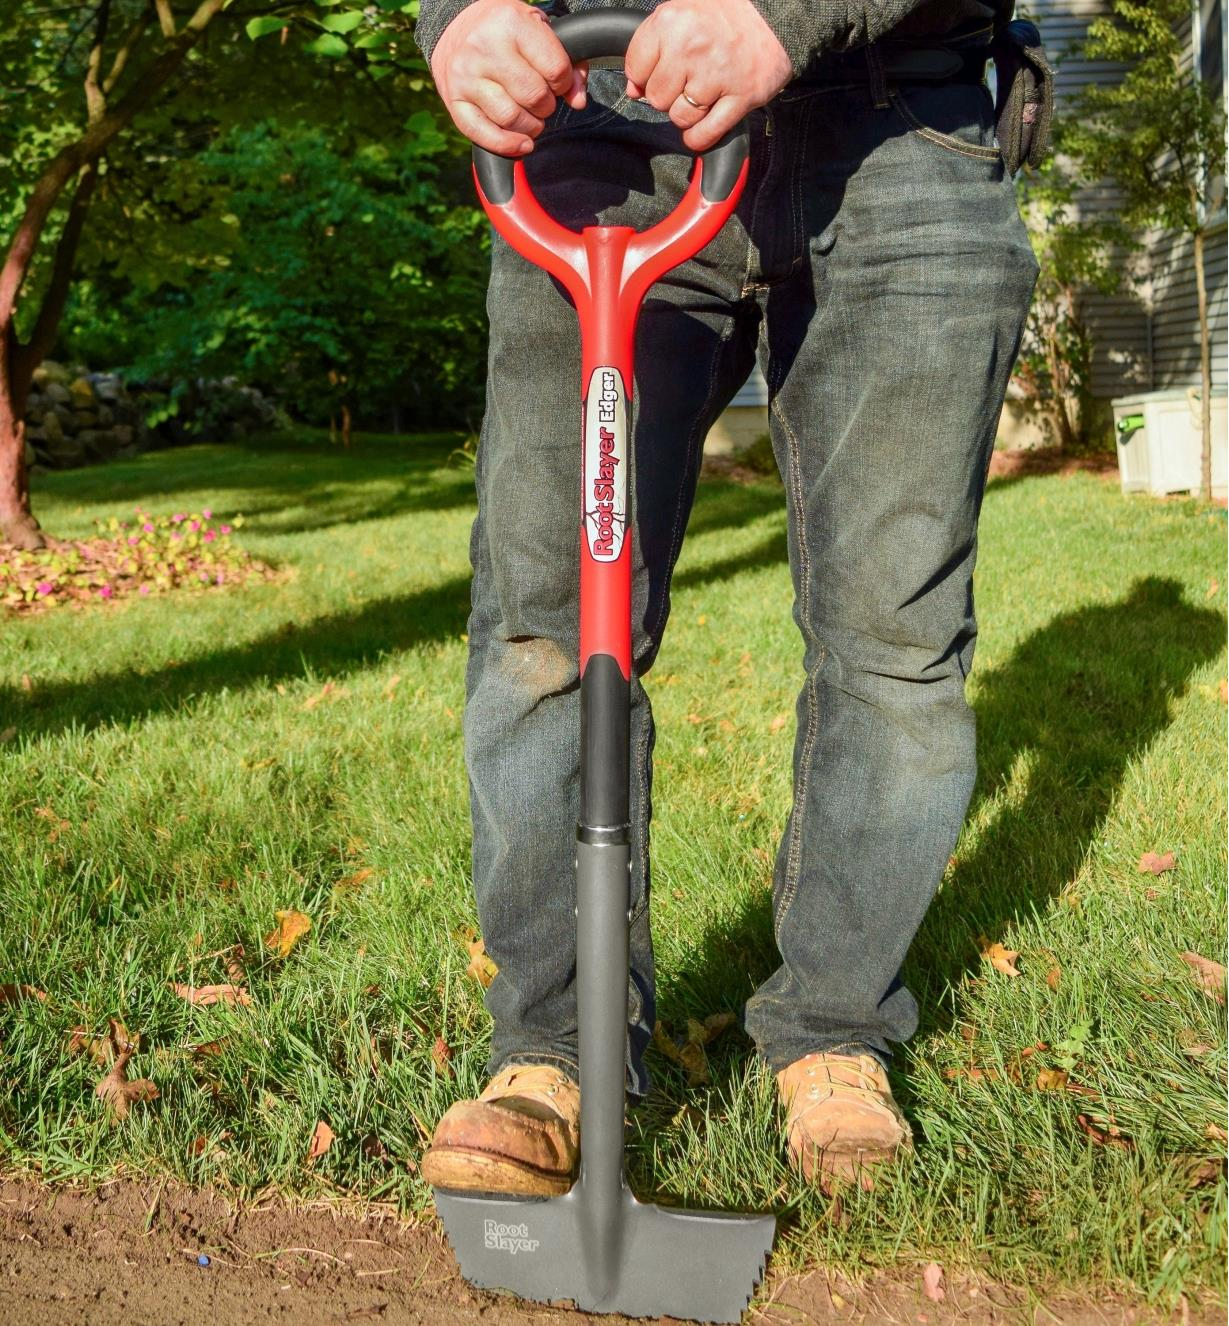 Removing a section of sod from a lawn, using the root-cutter lawn edger to cut a neat, straight edge